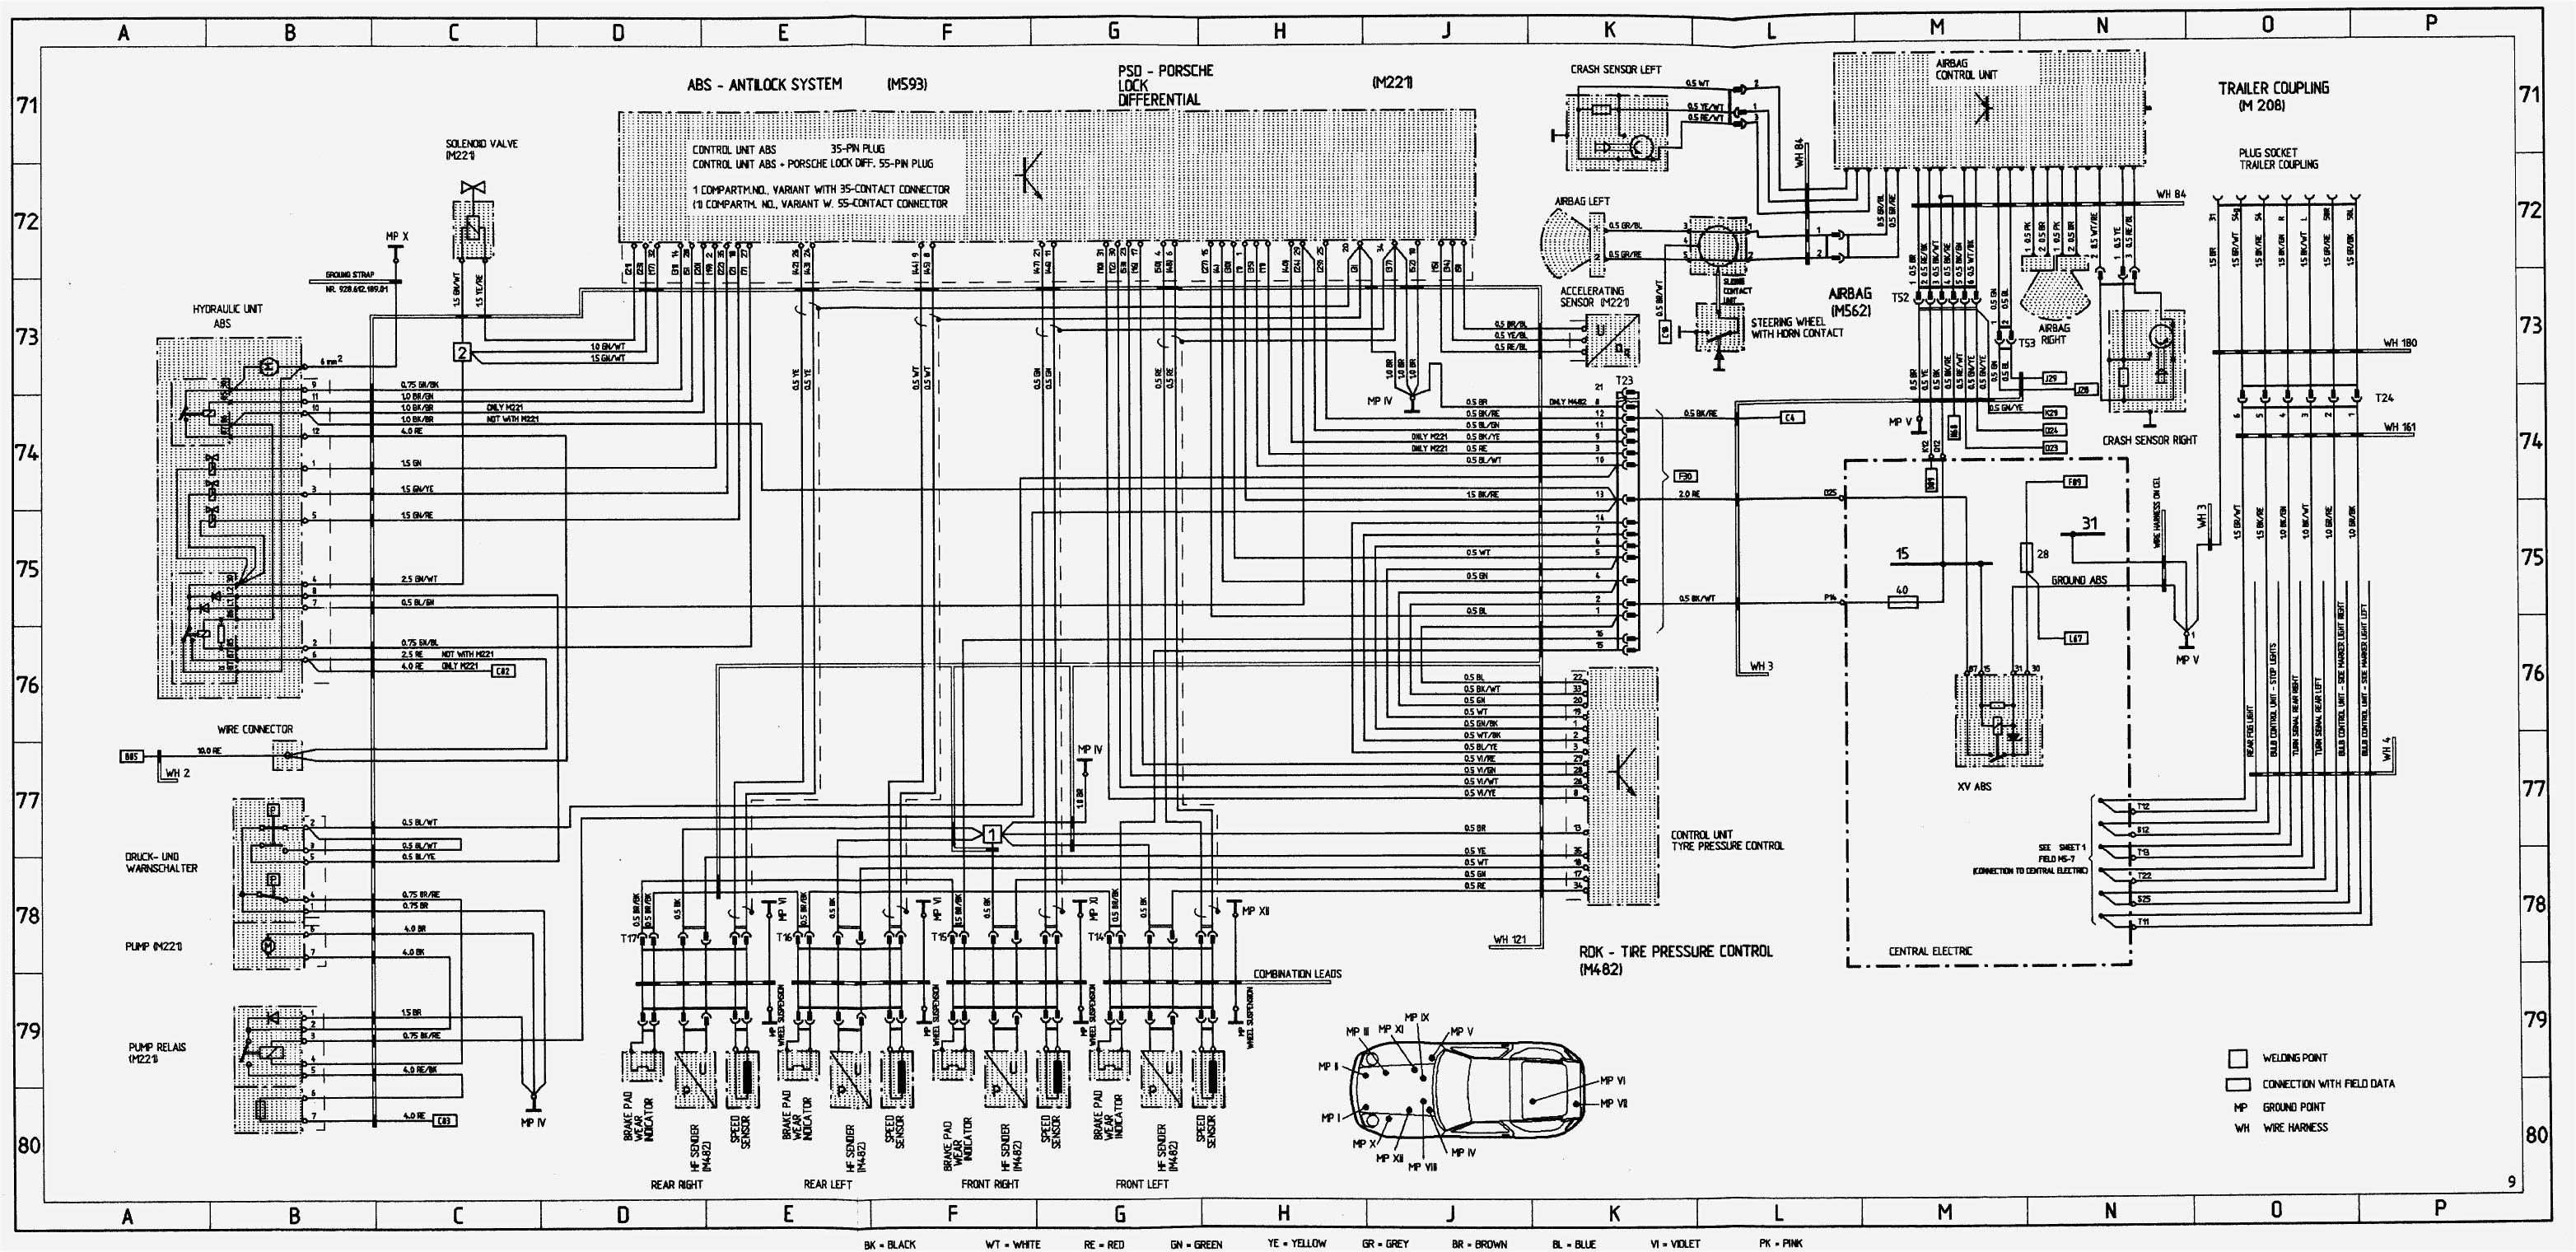 free bmw wiring diagrams wiring diagram toolbox bmw wiring diagram for scr tank 1996 bmw wiring [ 3128 x 1520 Pixel ]